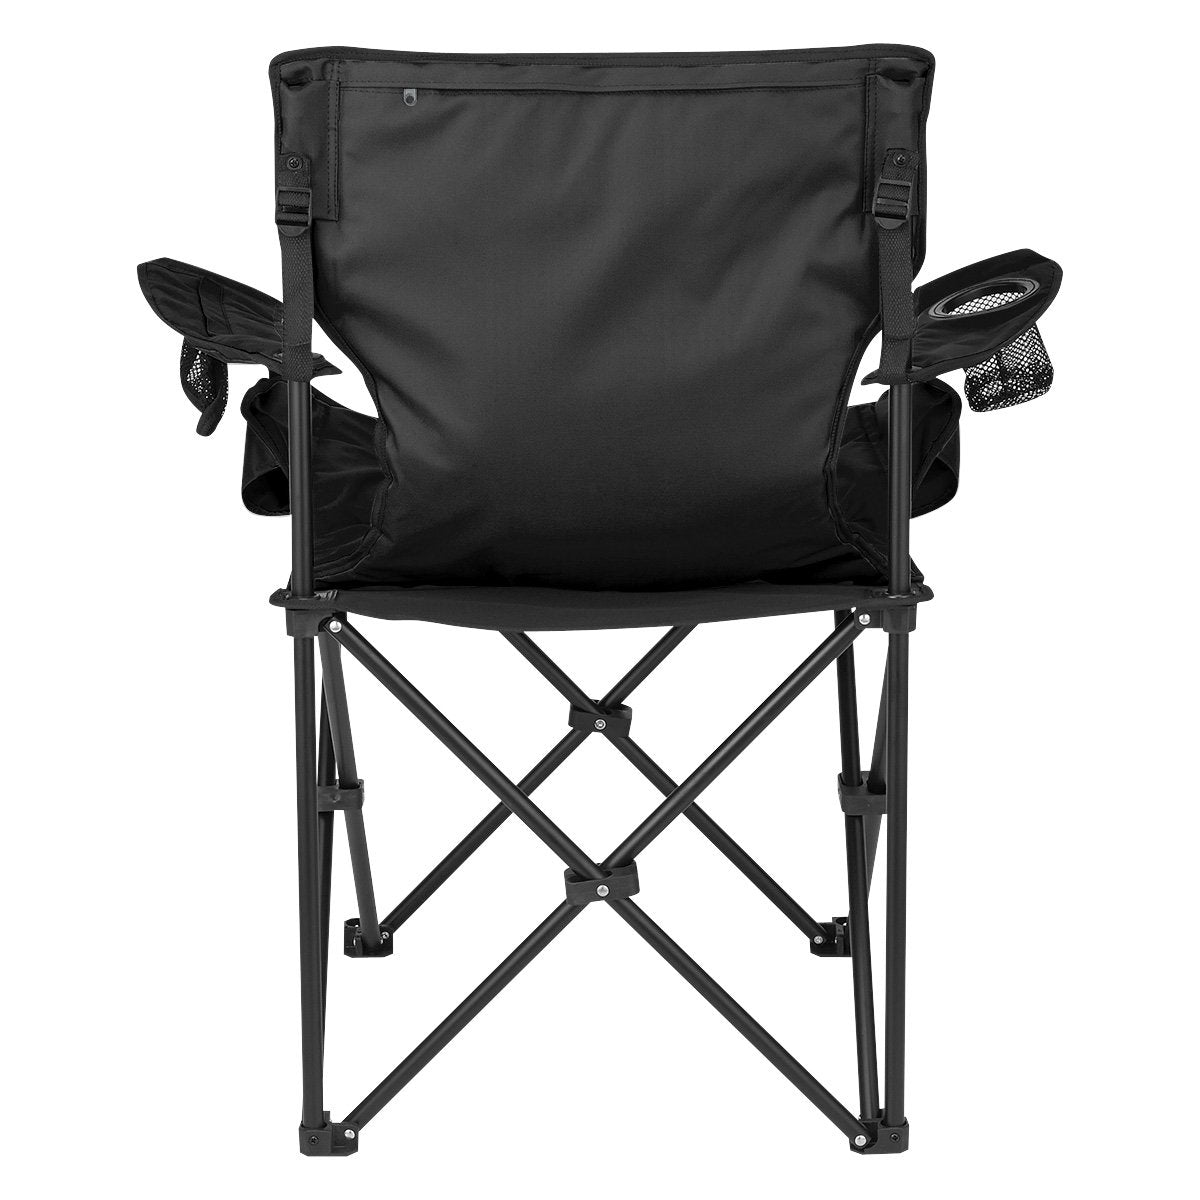 Magnificent Deluxe Padded Folding Chair With Carrying Bag Gamerscity Chair Design For Home Gamerscityorg